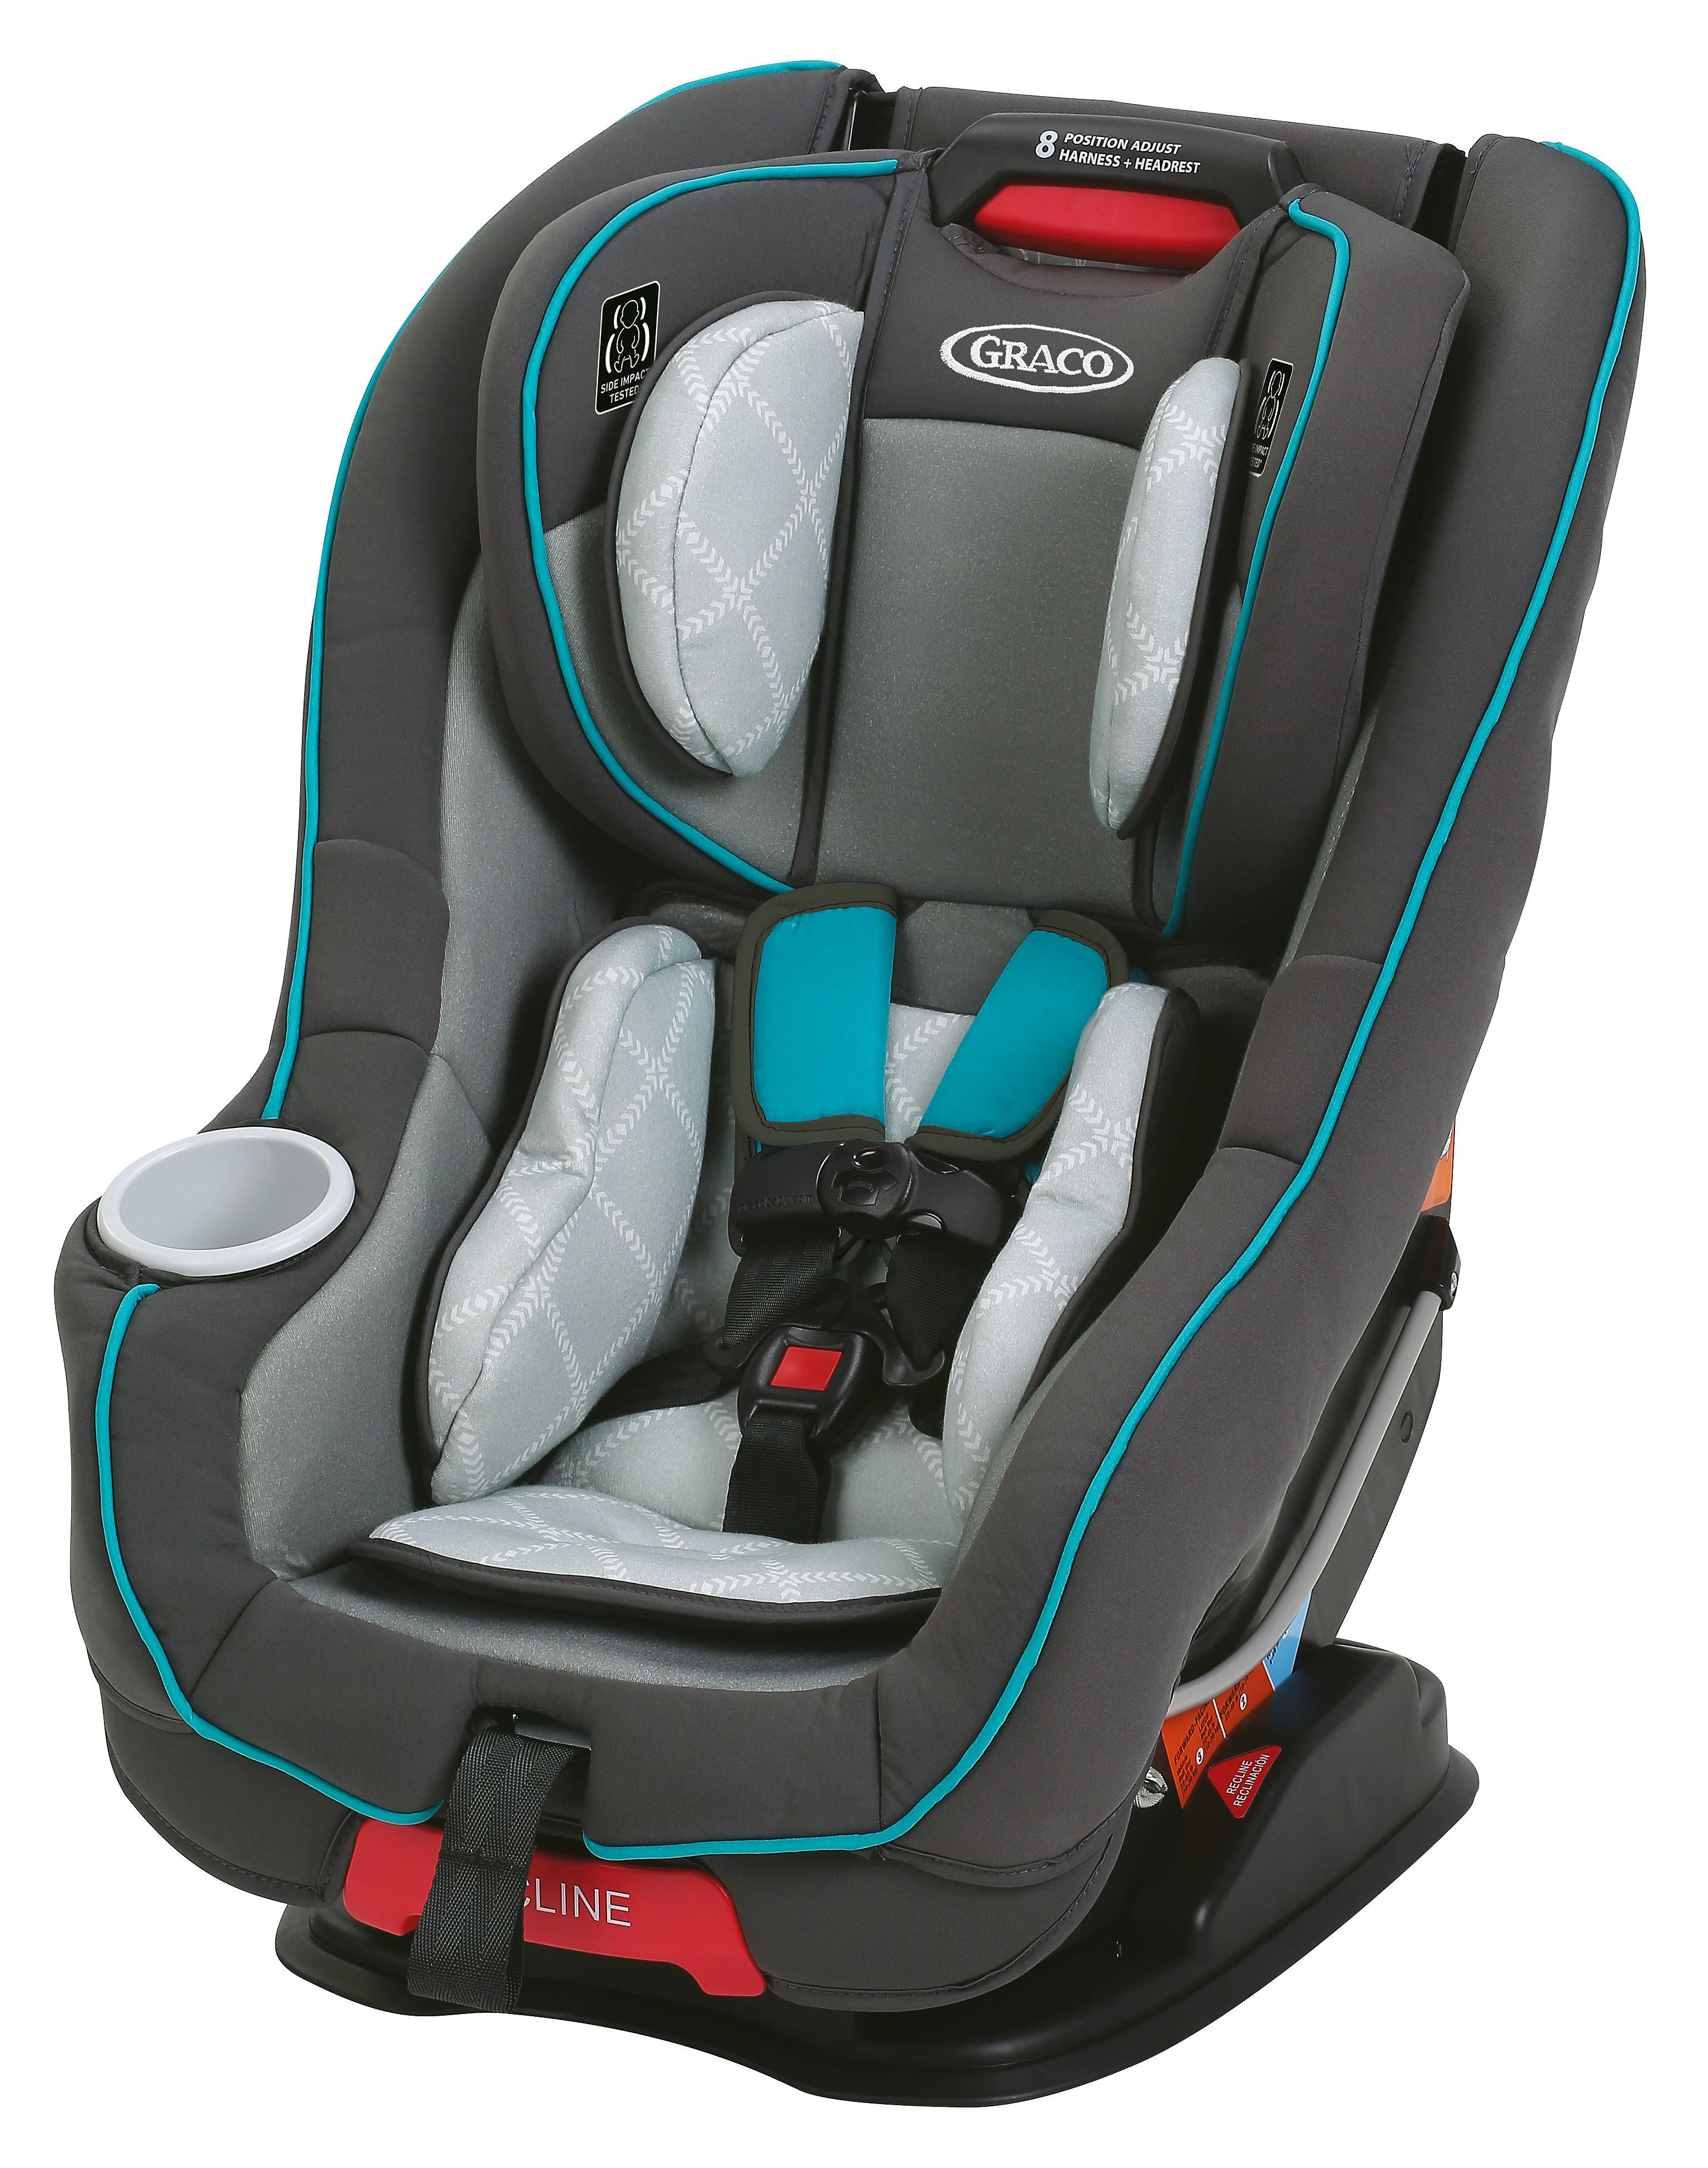 Baby Baby car seats, Convertible car seat, Car seats